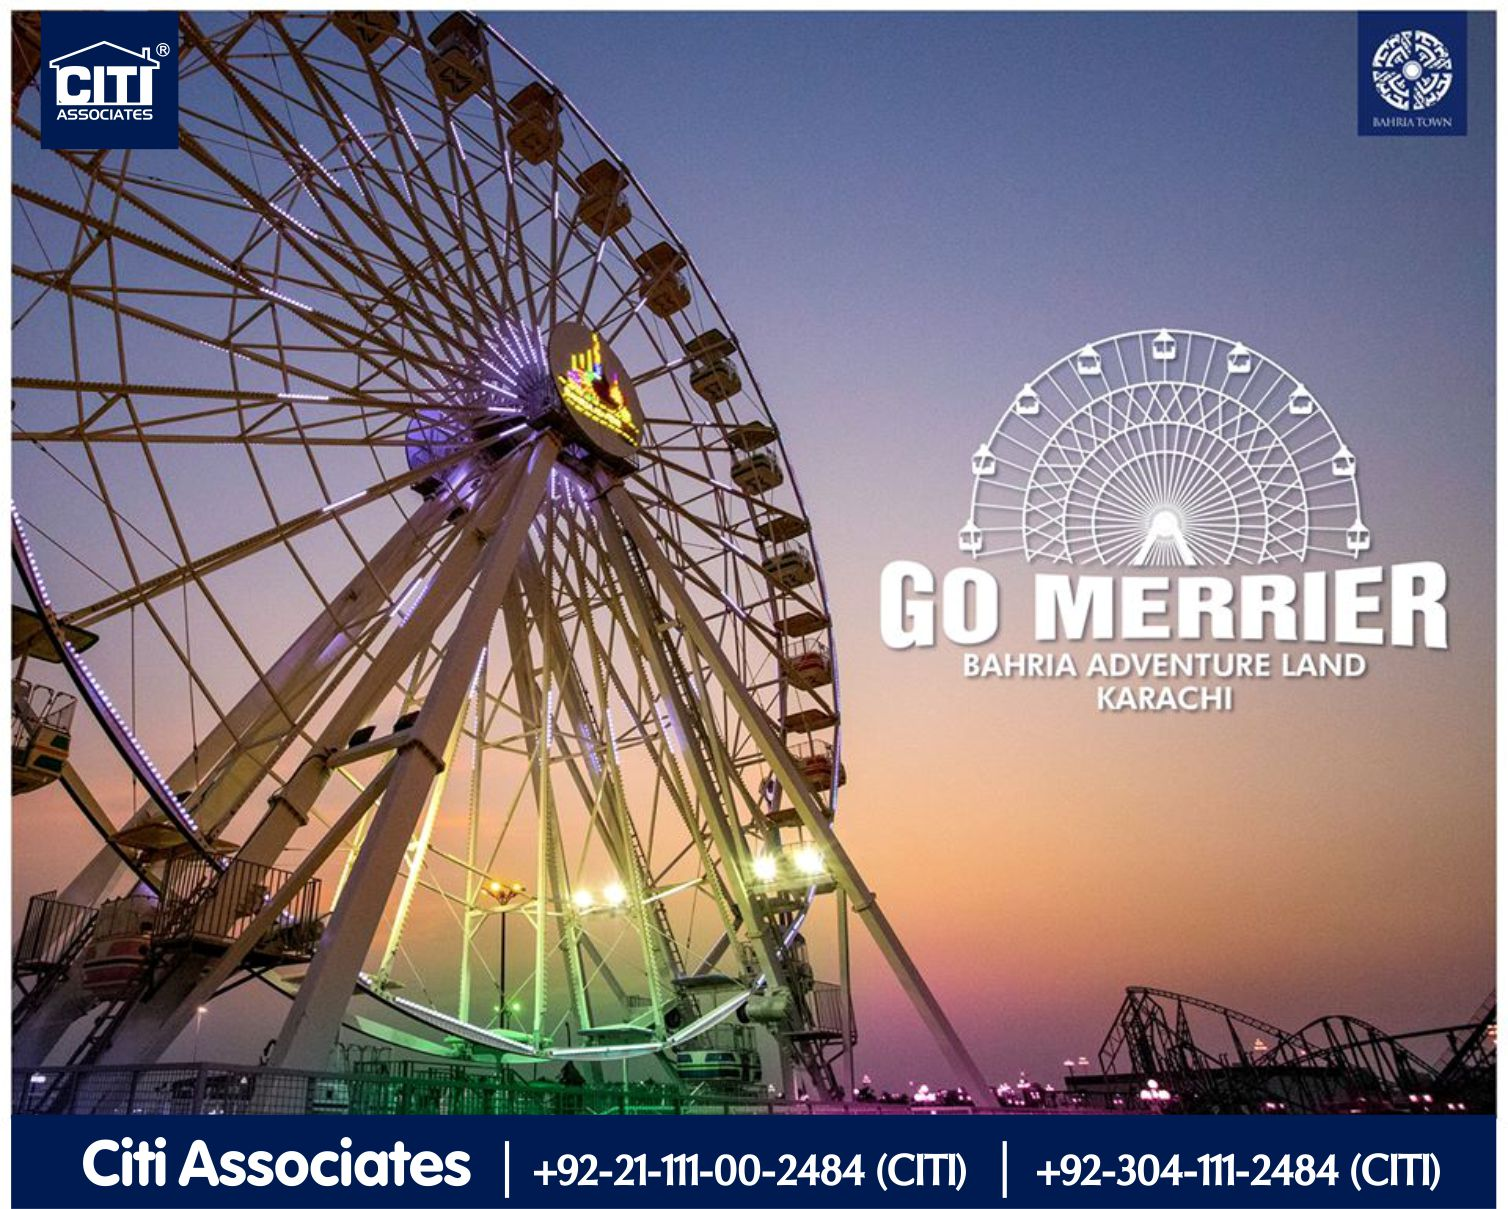 Go Merrier | Bahria Adventure Land Karachi